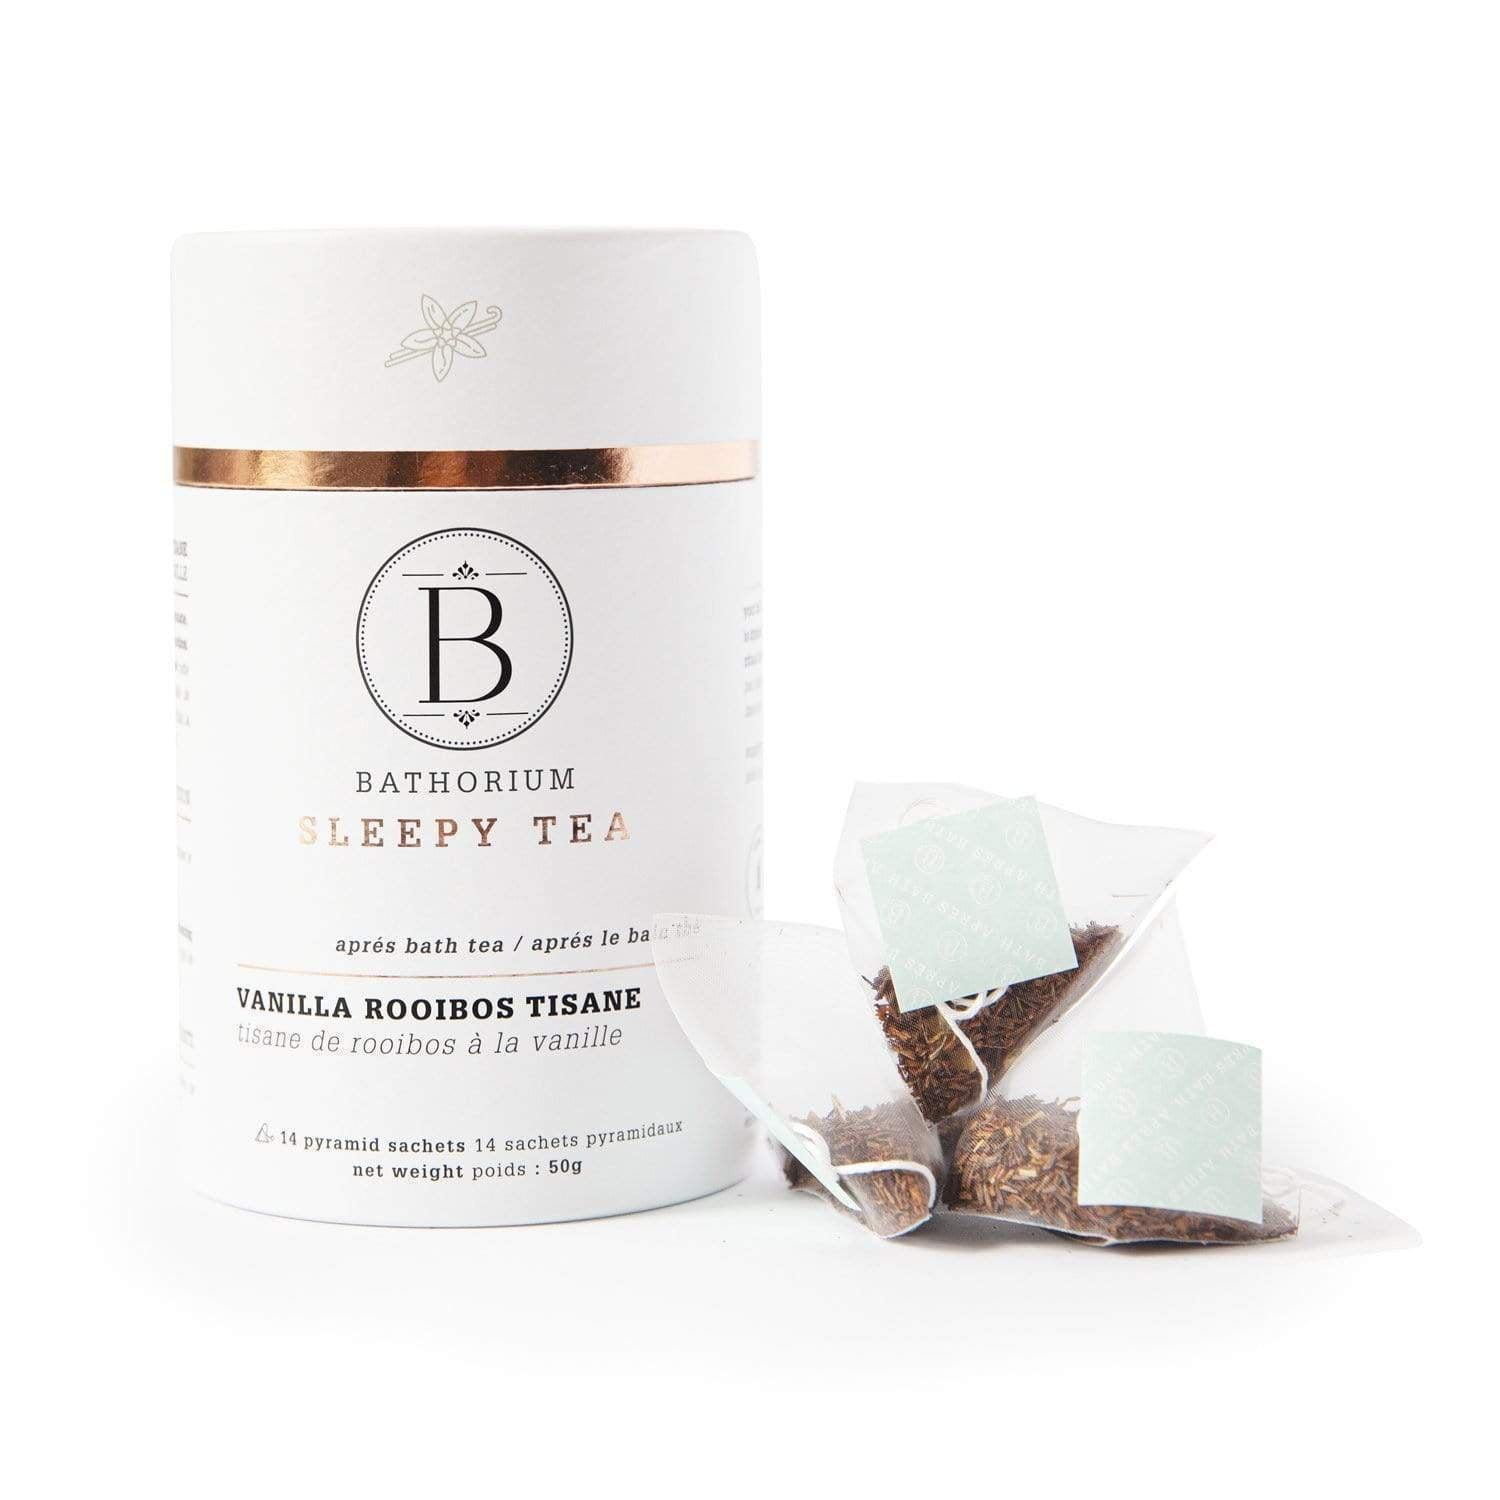 BATHORIUM - APRES BATH - SLEEPY TIME PYRAMID BAGGED TEA - VANILLA ROOIBOS TISANE